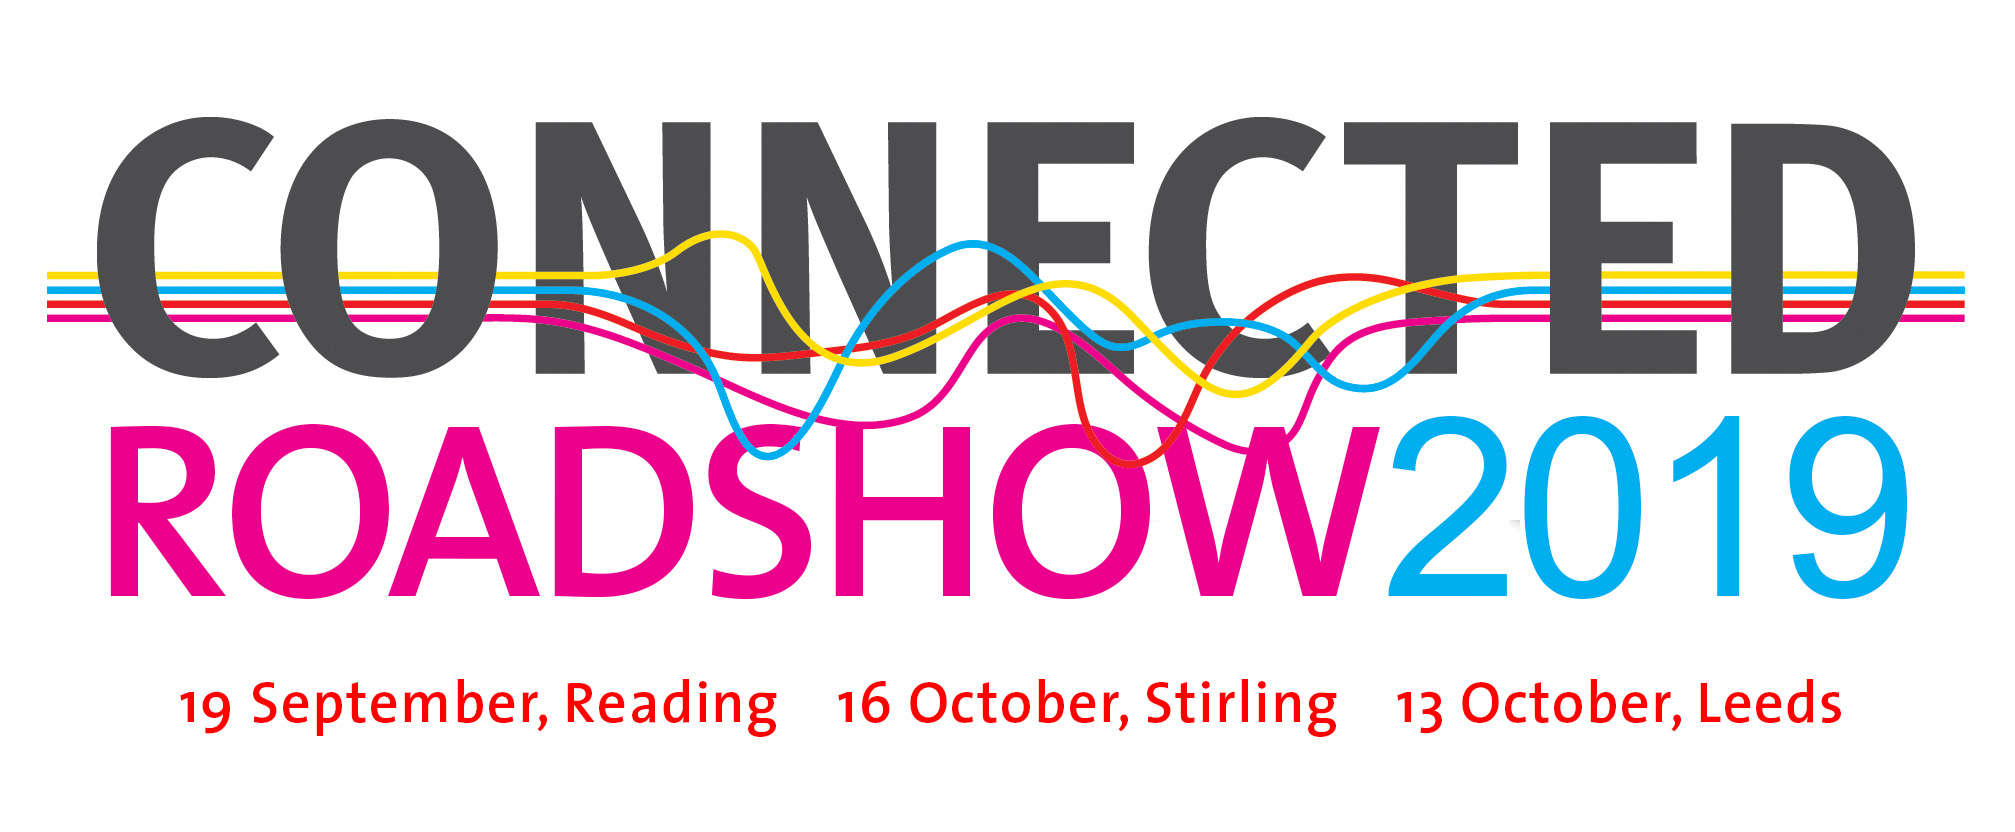 Connected Distribution Roadshow2019 logo